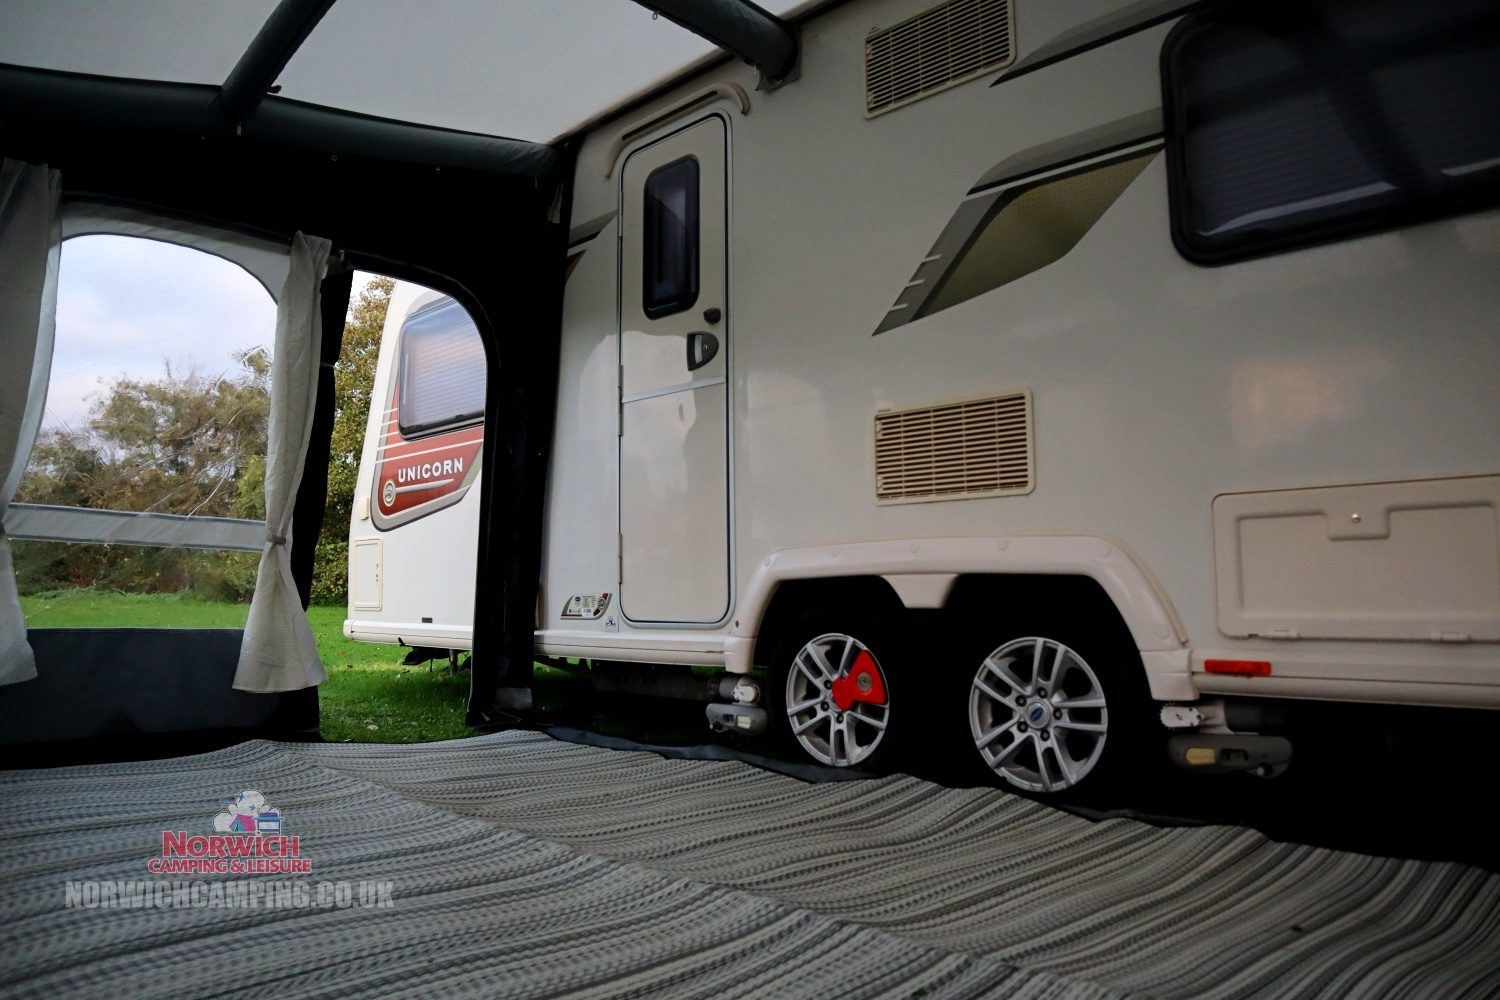 Dometic Ace Air Pro 400 Awning 2021 Norwichcampingimg 1410